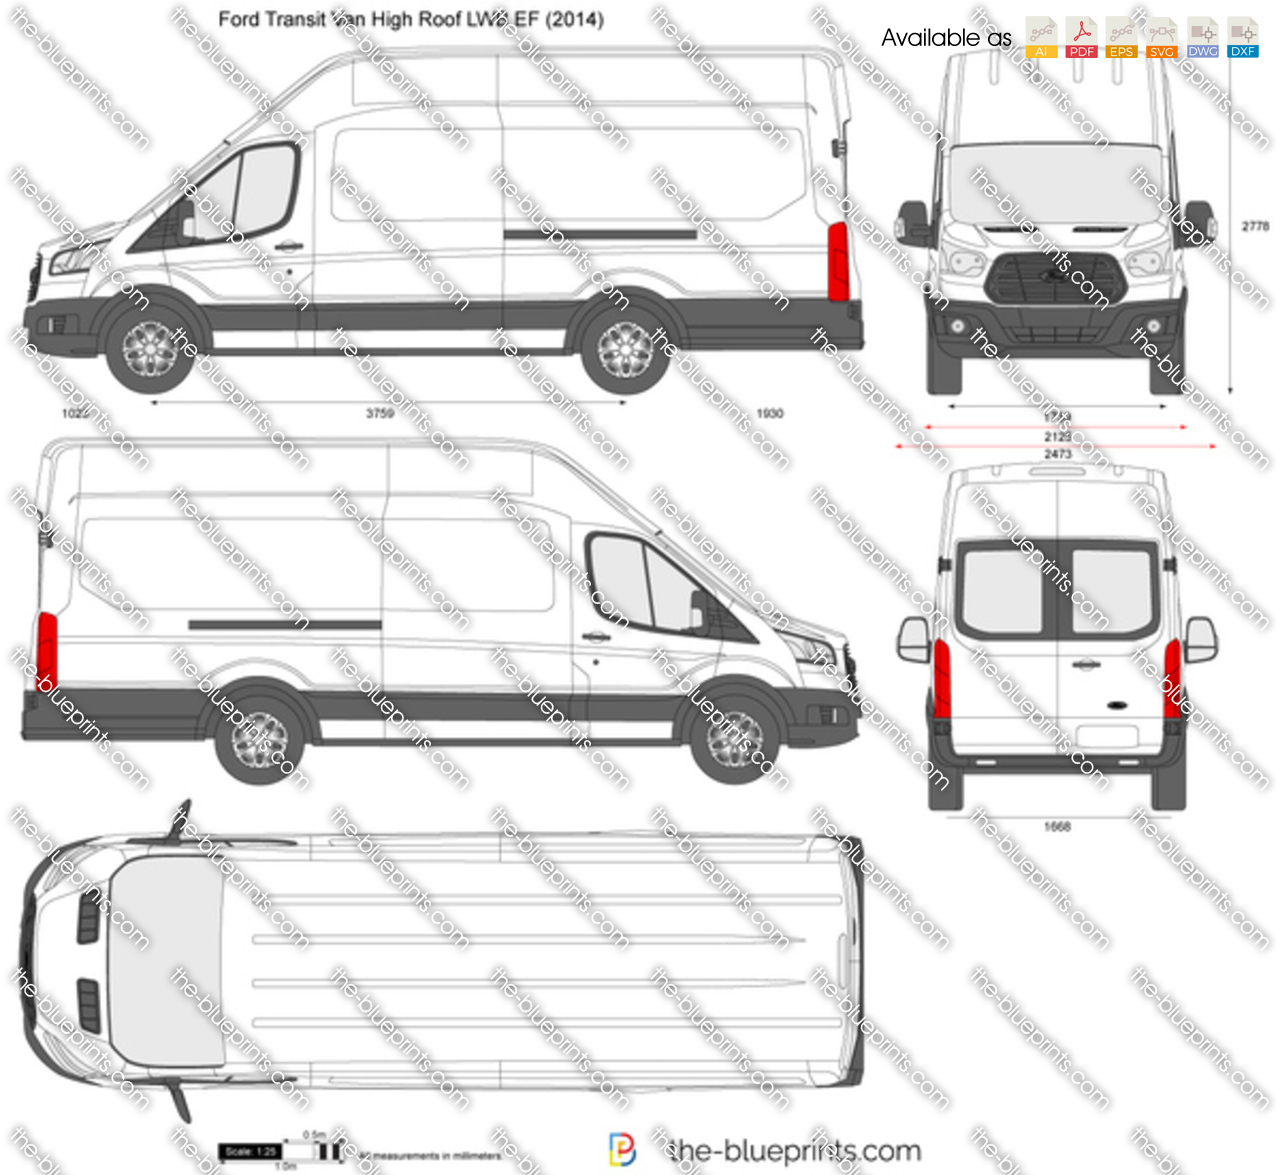 ford transit lwb high roof internal dimensions best image voixmag com. Black Bedroom Furniture Sets. Home Design Ideas